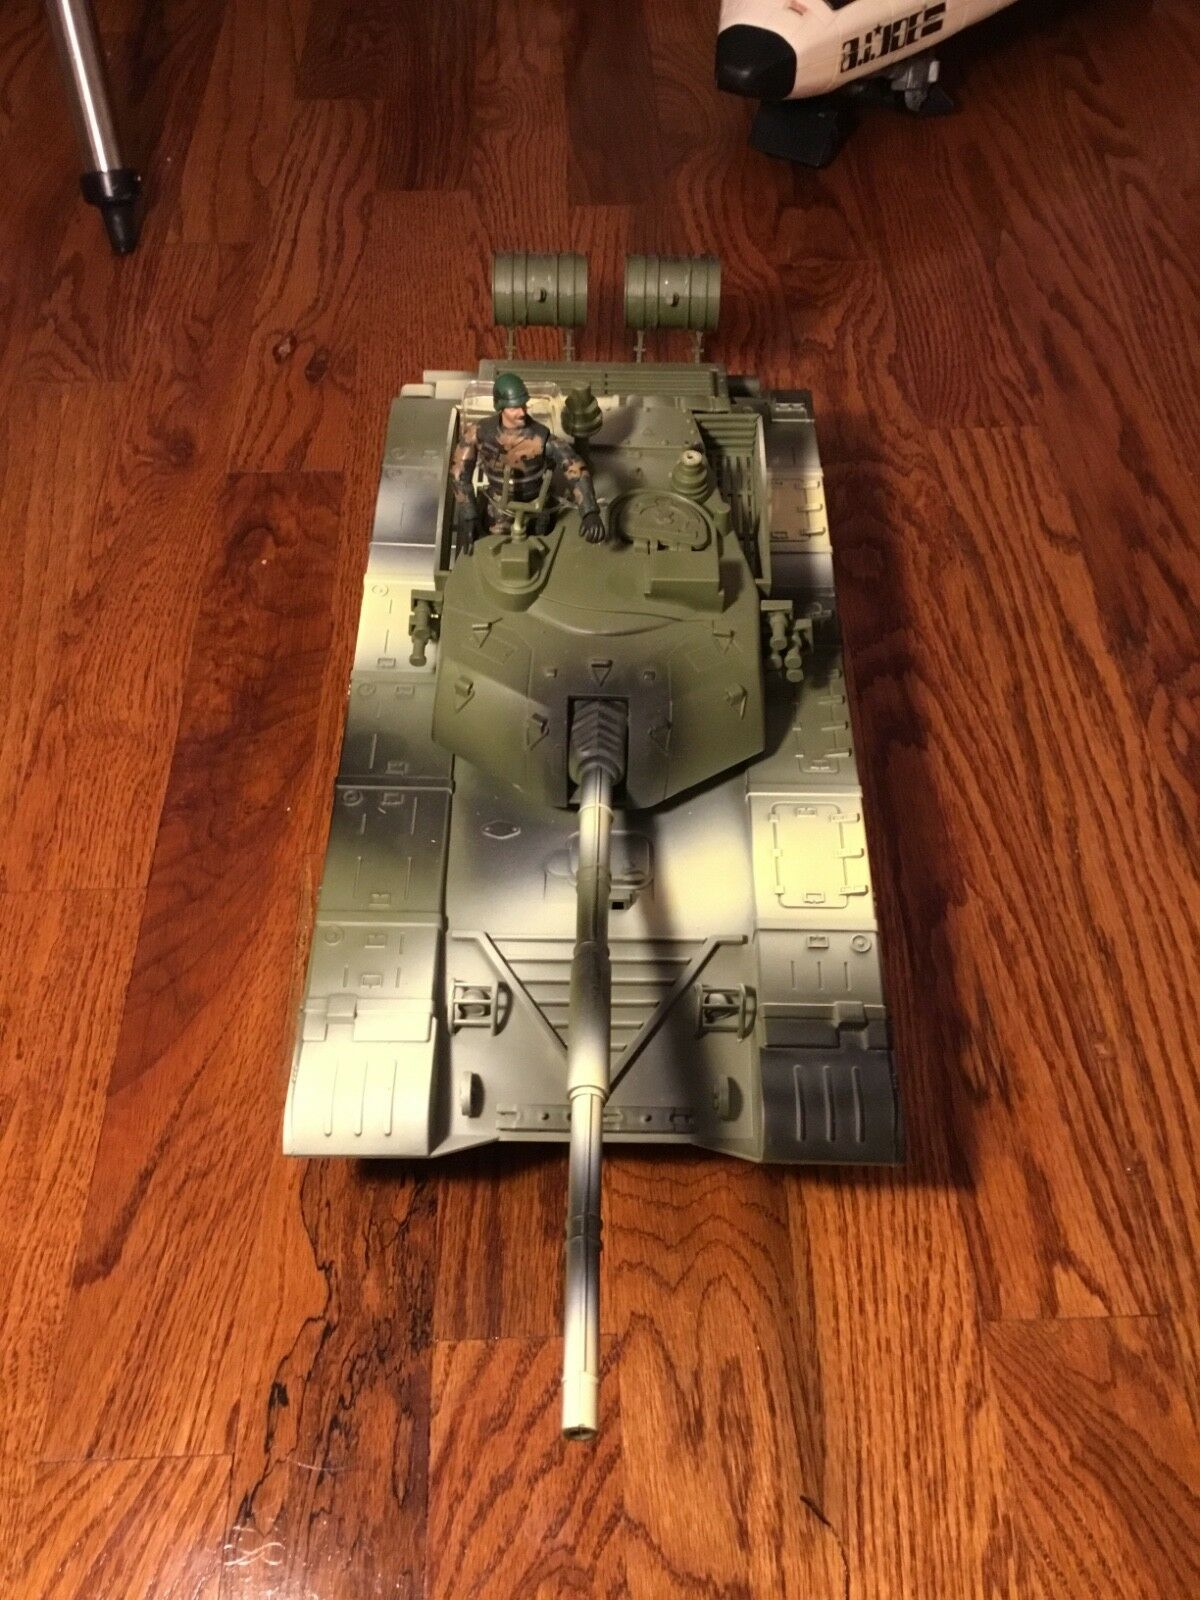 1 18 Tank By Power team elite toys.